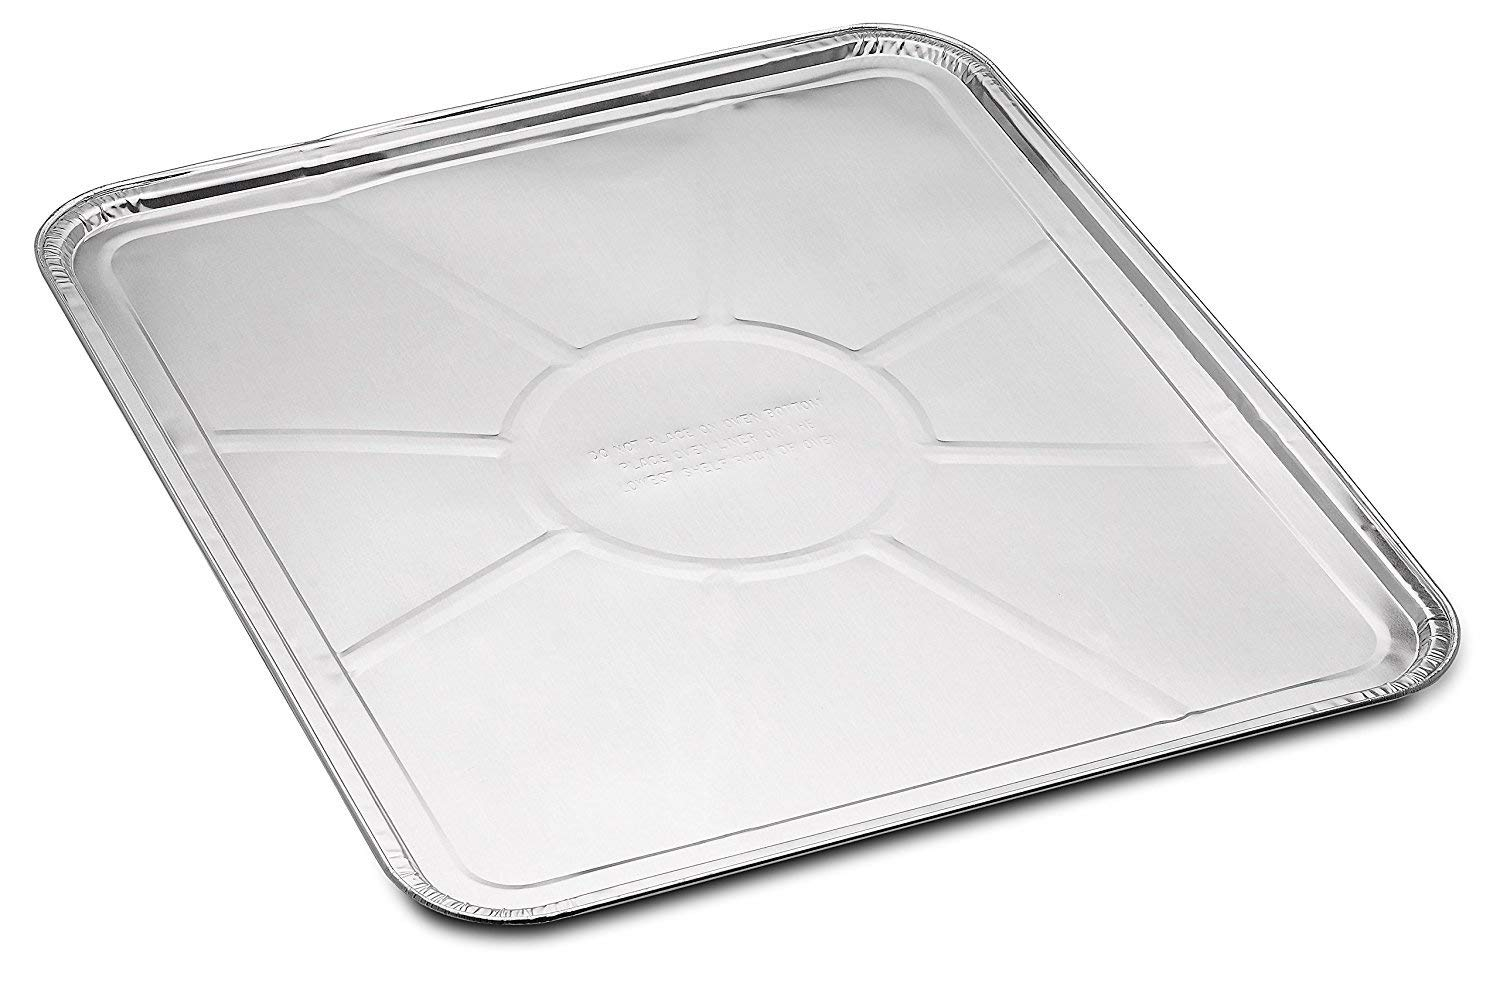 Replace parts 20-Pack Disposable Foil Oven Liners - Keep Your Oven Clean and Healthy - Perfect Silver Foil Drip Pan Tray for Cooking, Baking, Roasting, and Grilling- 18.5 x15.5'' inch